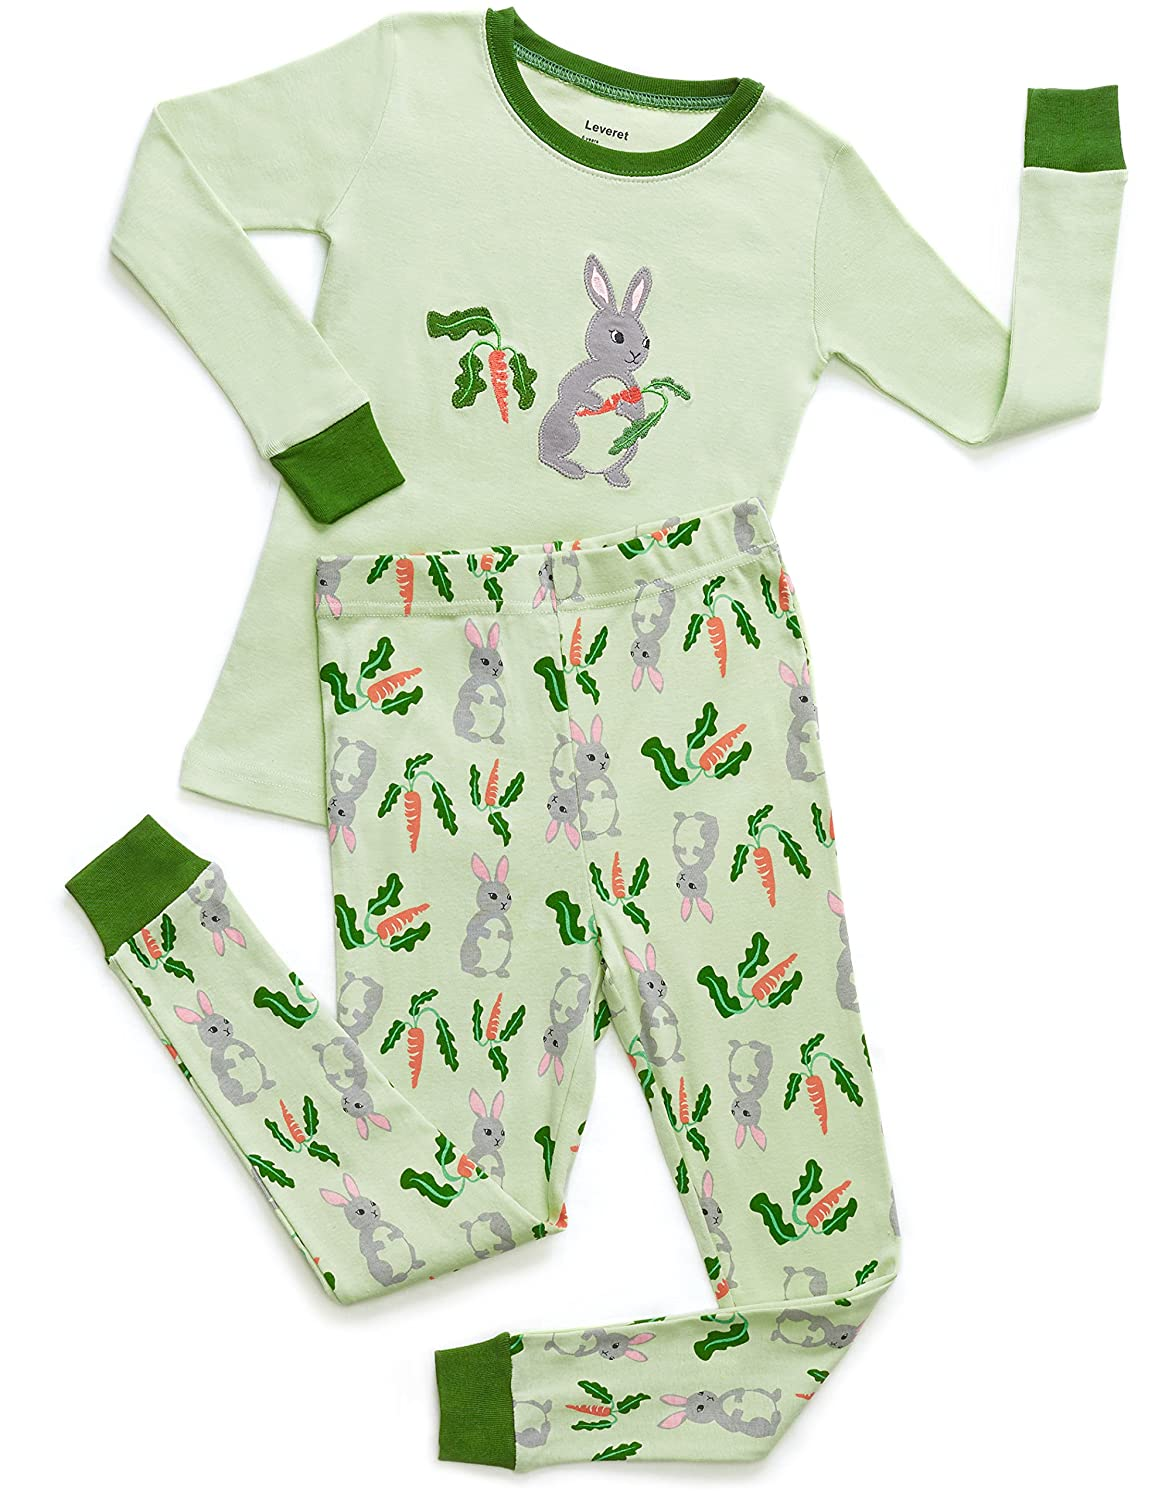 fe4131a5e Amazon.com  Leveret Kids   Toddler Pajamas Boys Girls 2 Piece Pjs ...